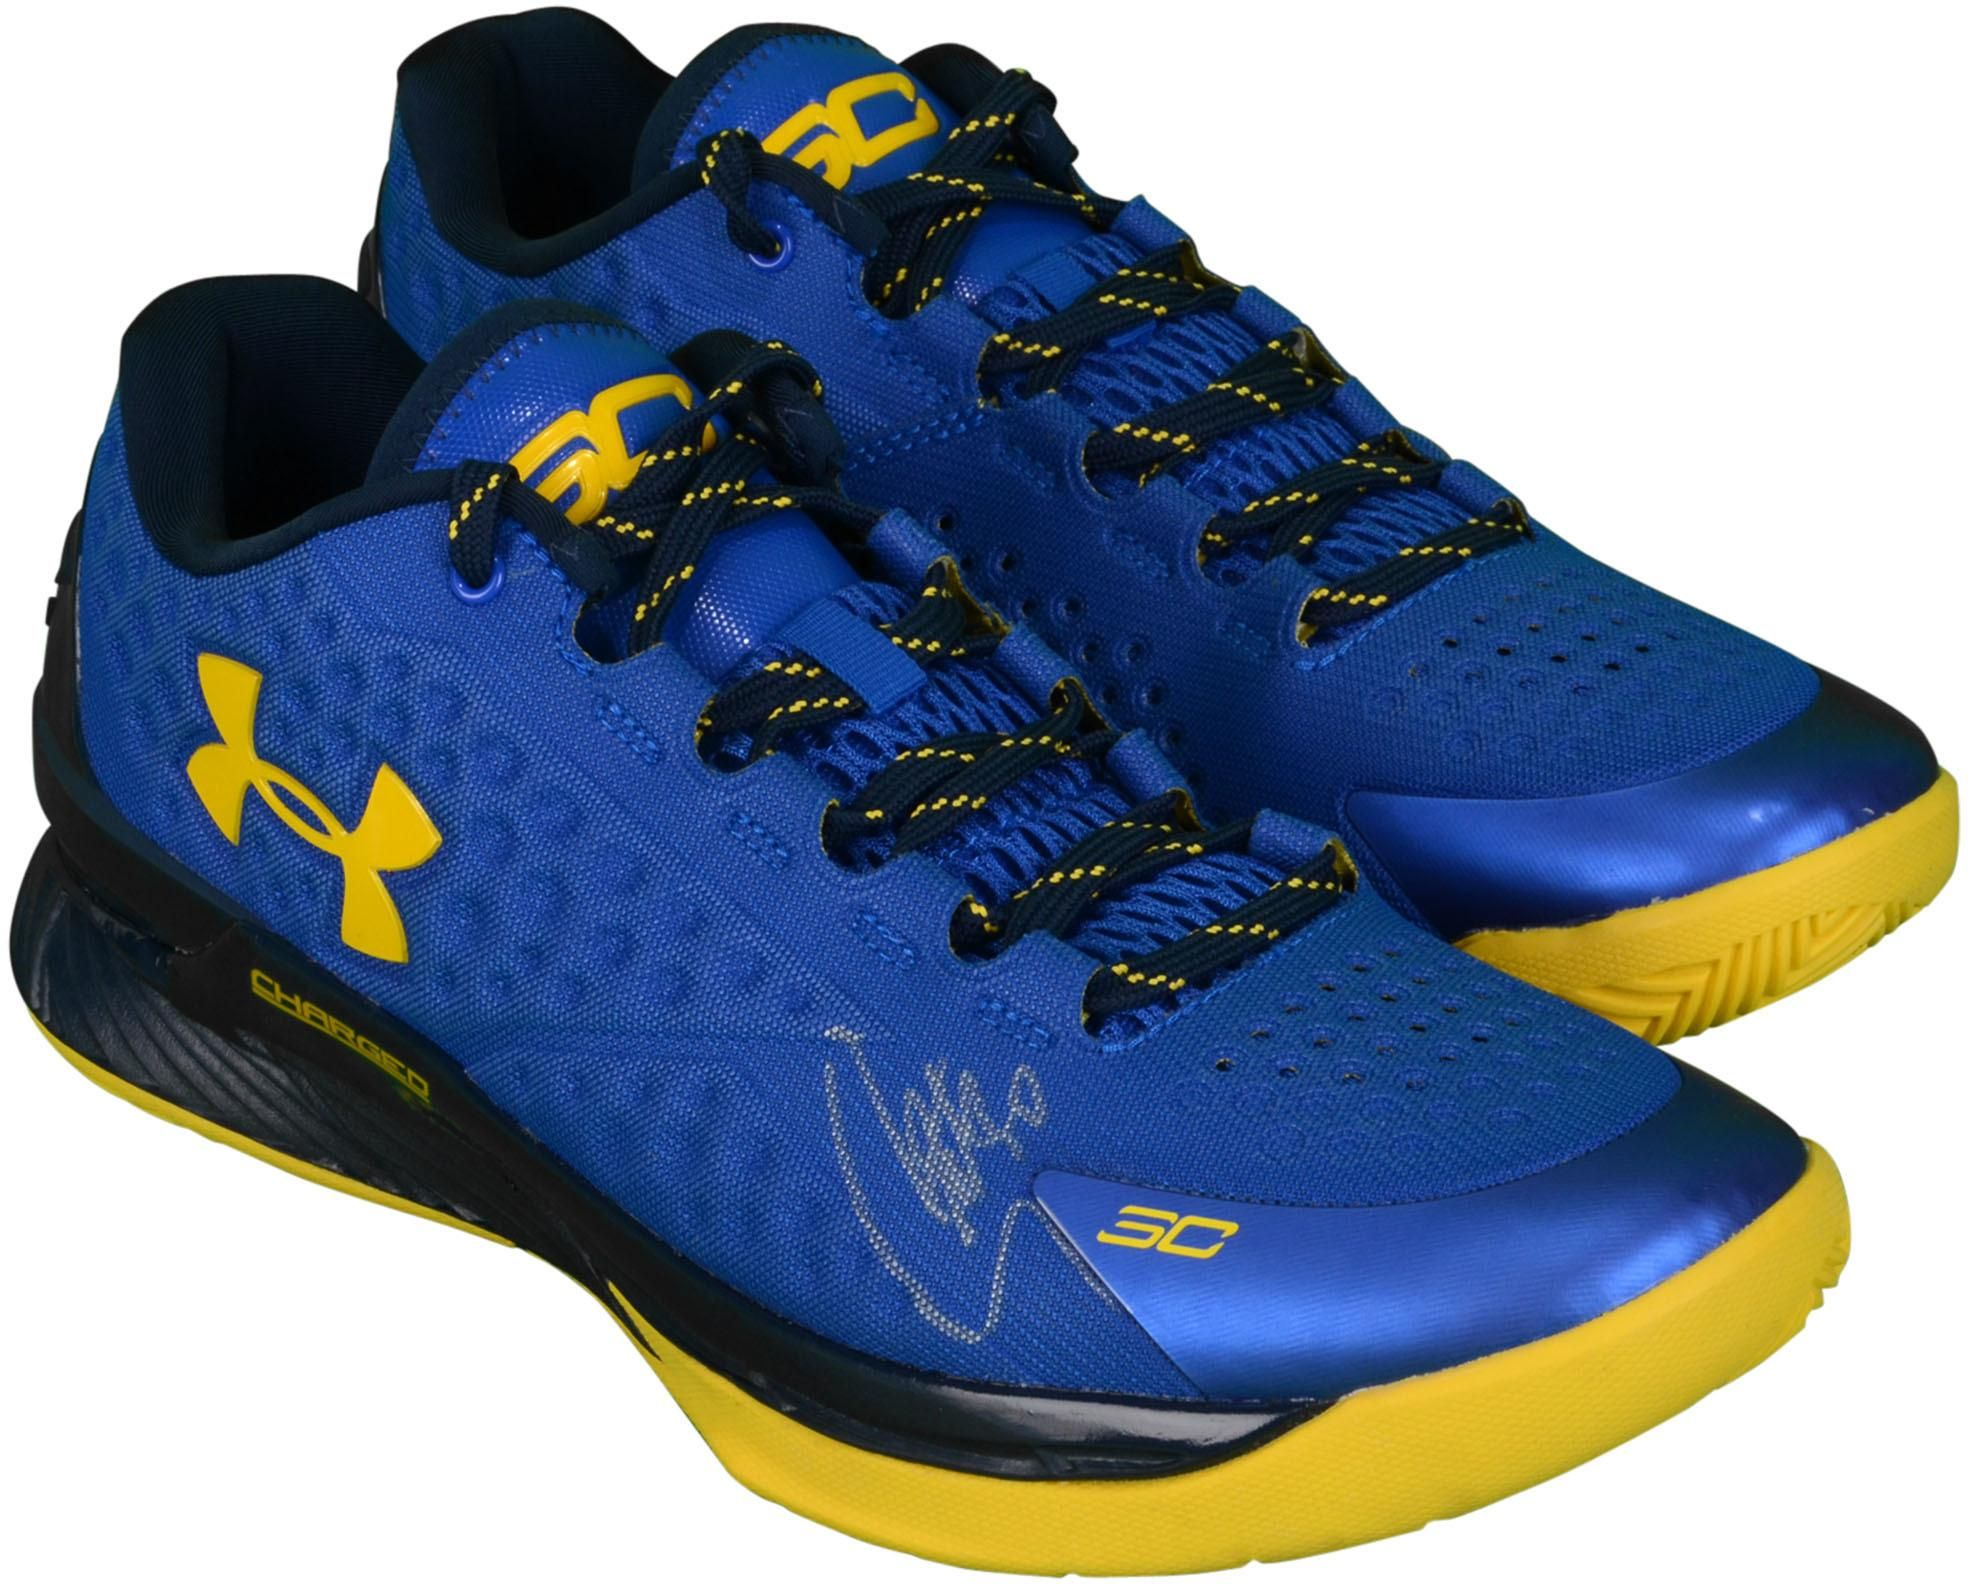 1eb380733458 Stephen Curry Golden State Warriors Autographed Curry 1 Blue and Yellow  Shoes